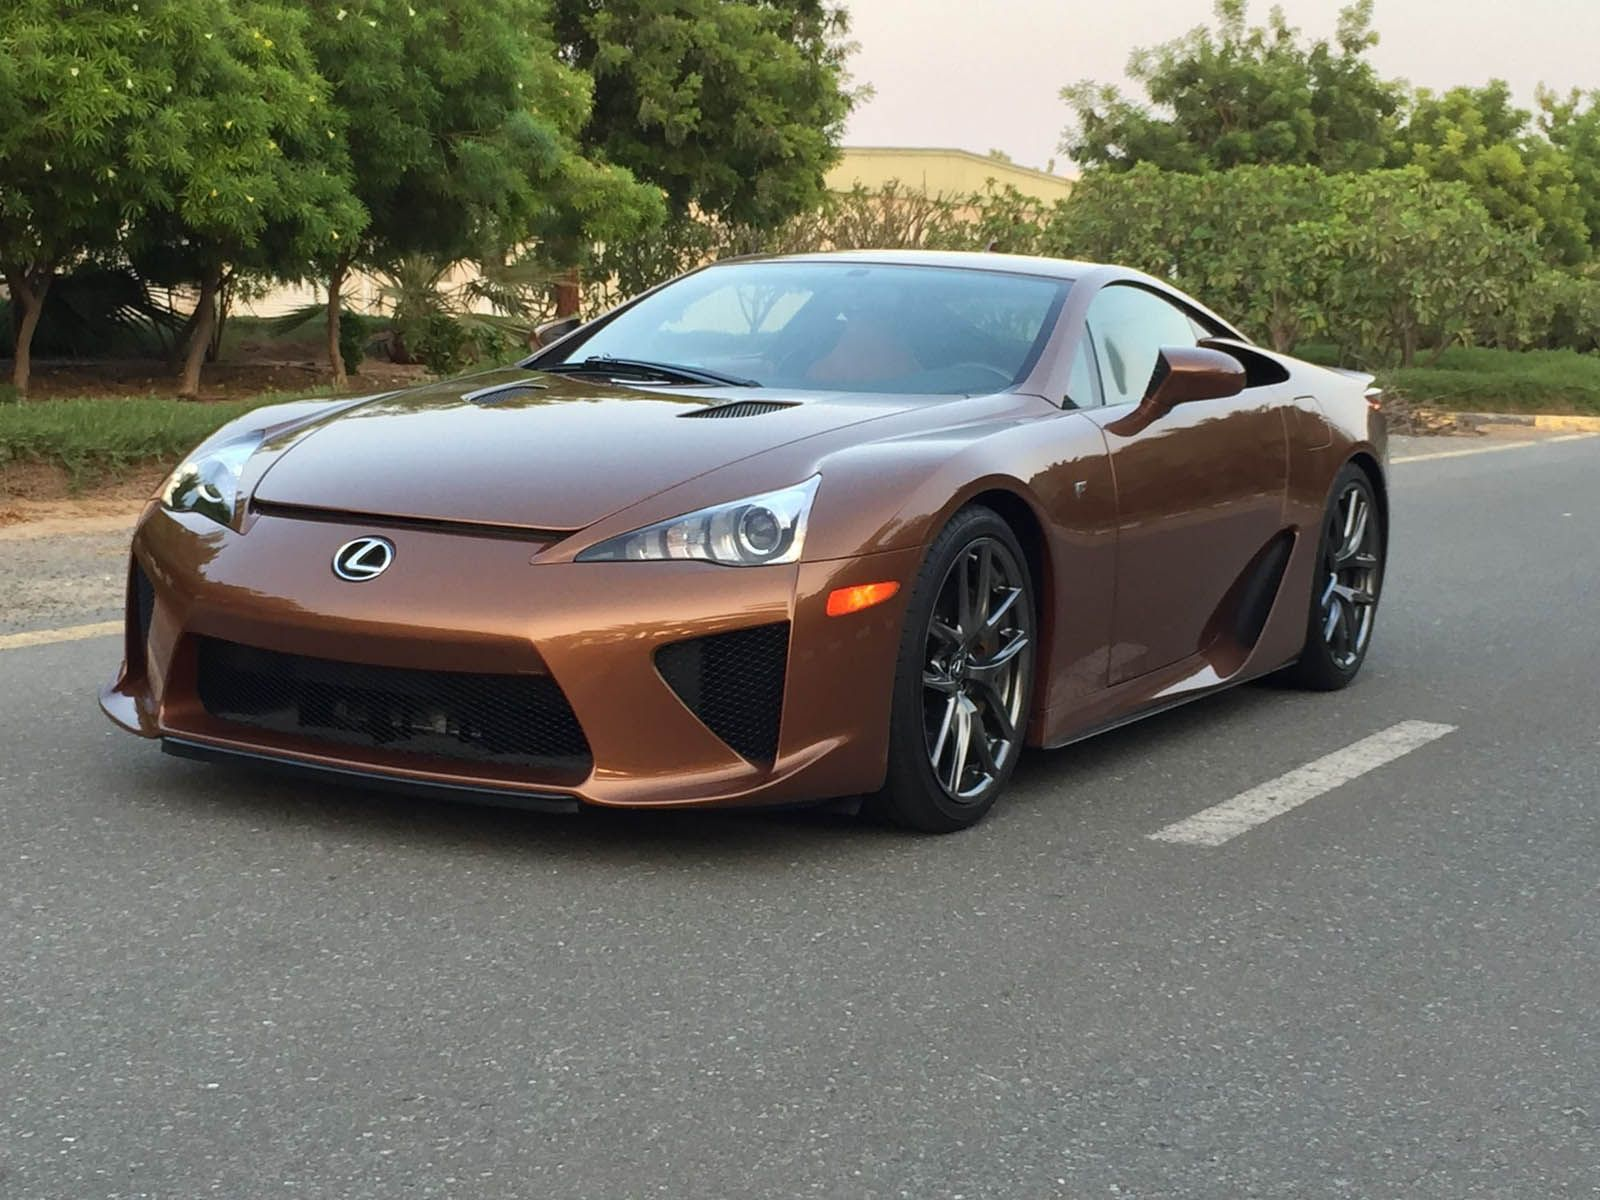 What Would You Say To A Brown Lexus Lfa For 645k Lexus Lfa Lexus Luxury Cars For Sale